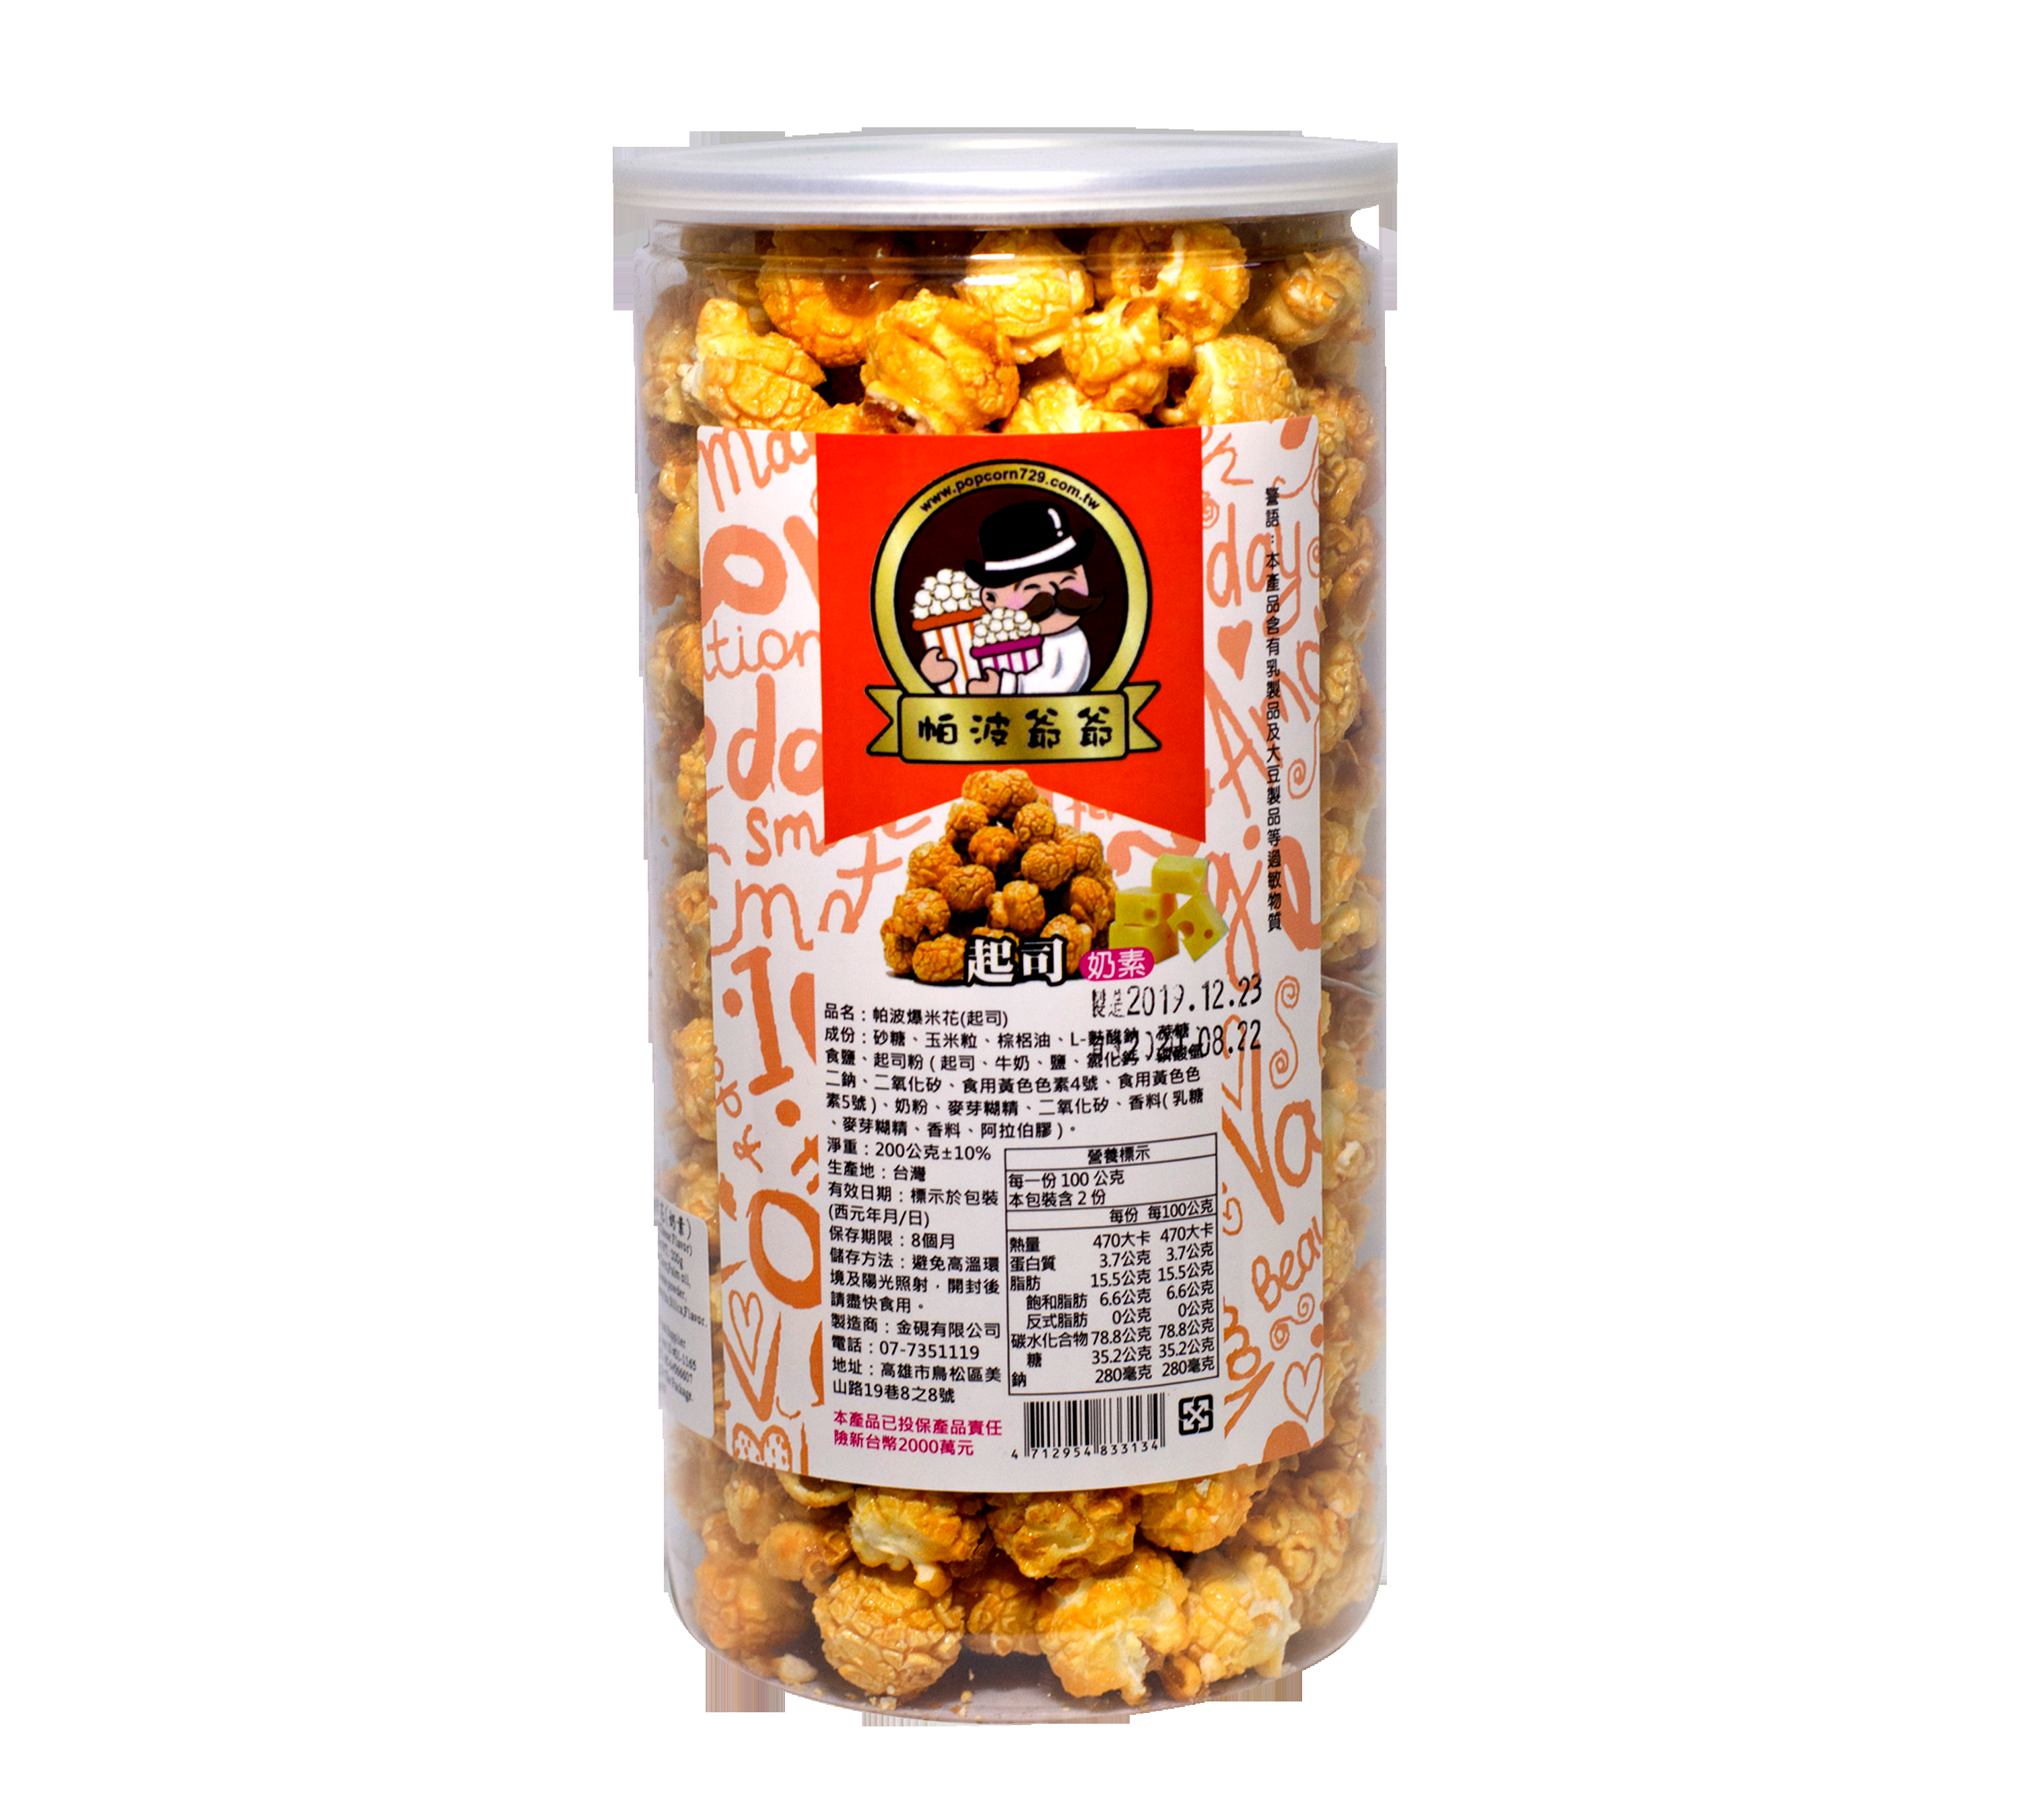 Image Popcorn Cheese 金砚 - 起司爆米花 200g